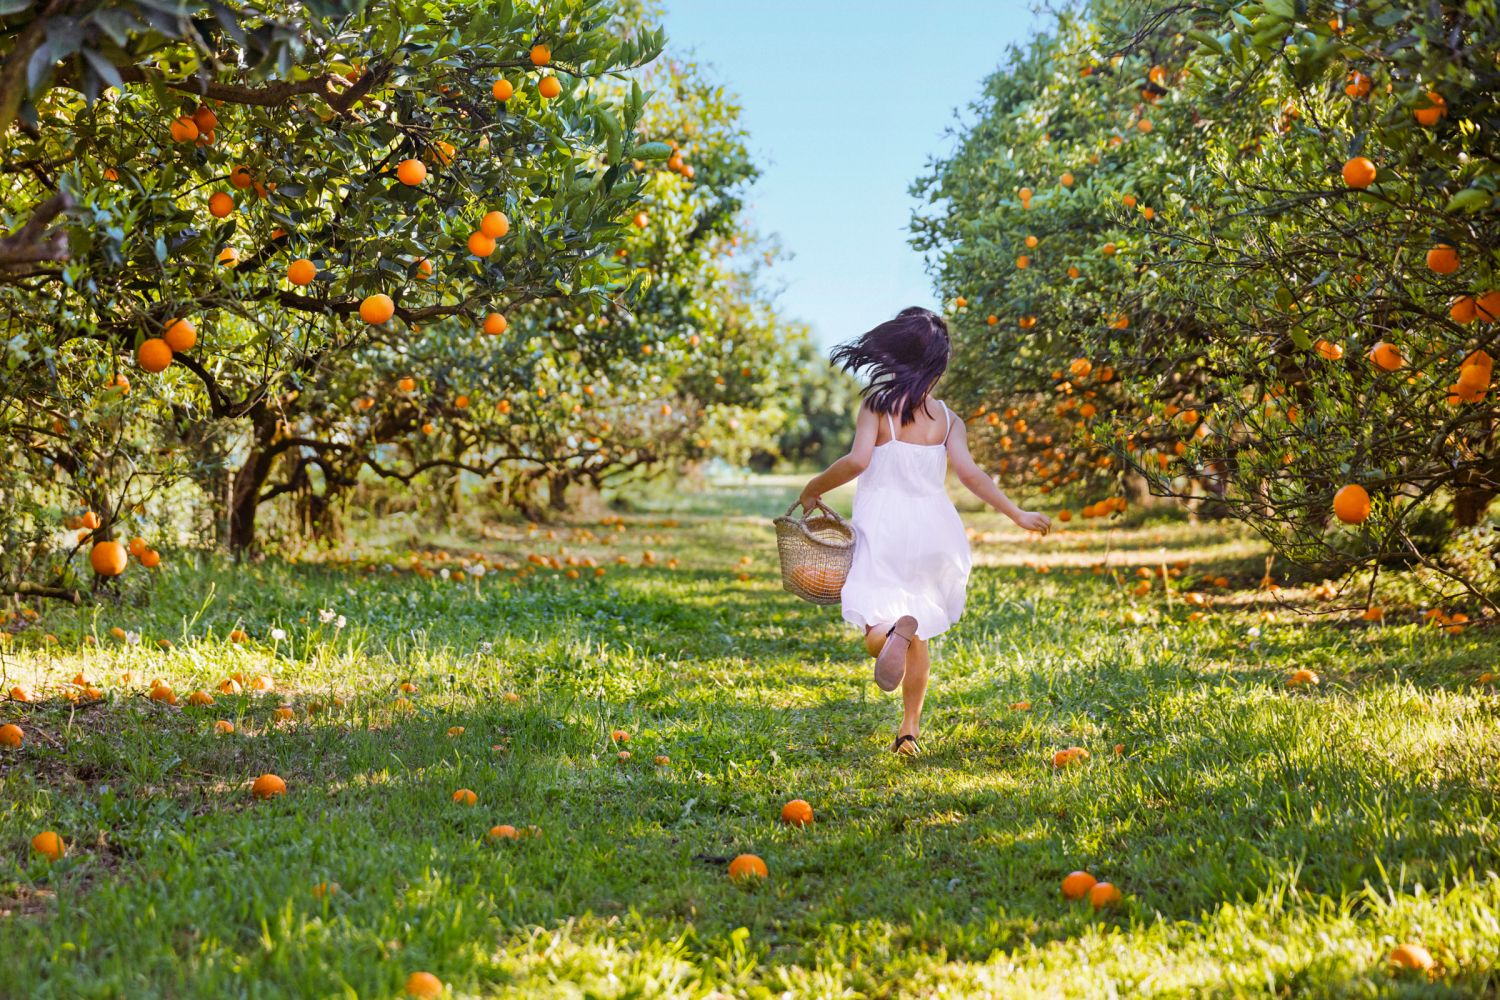 Orange Orchard in the Hawkesbury Area